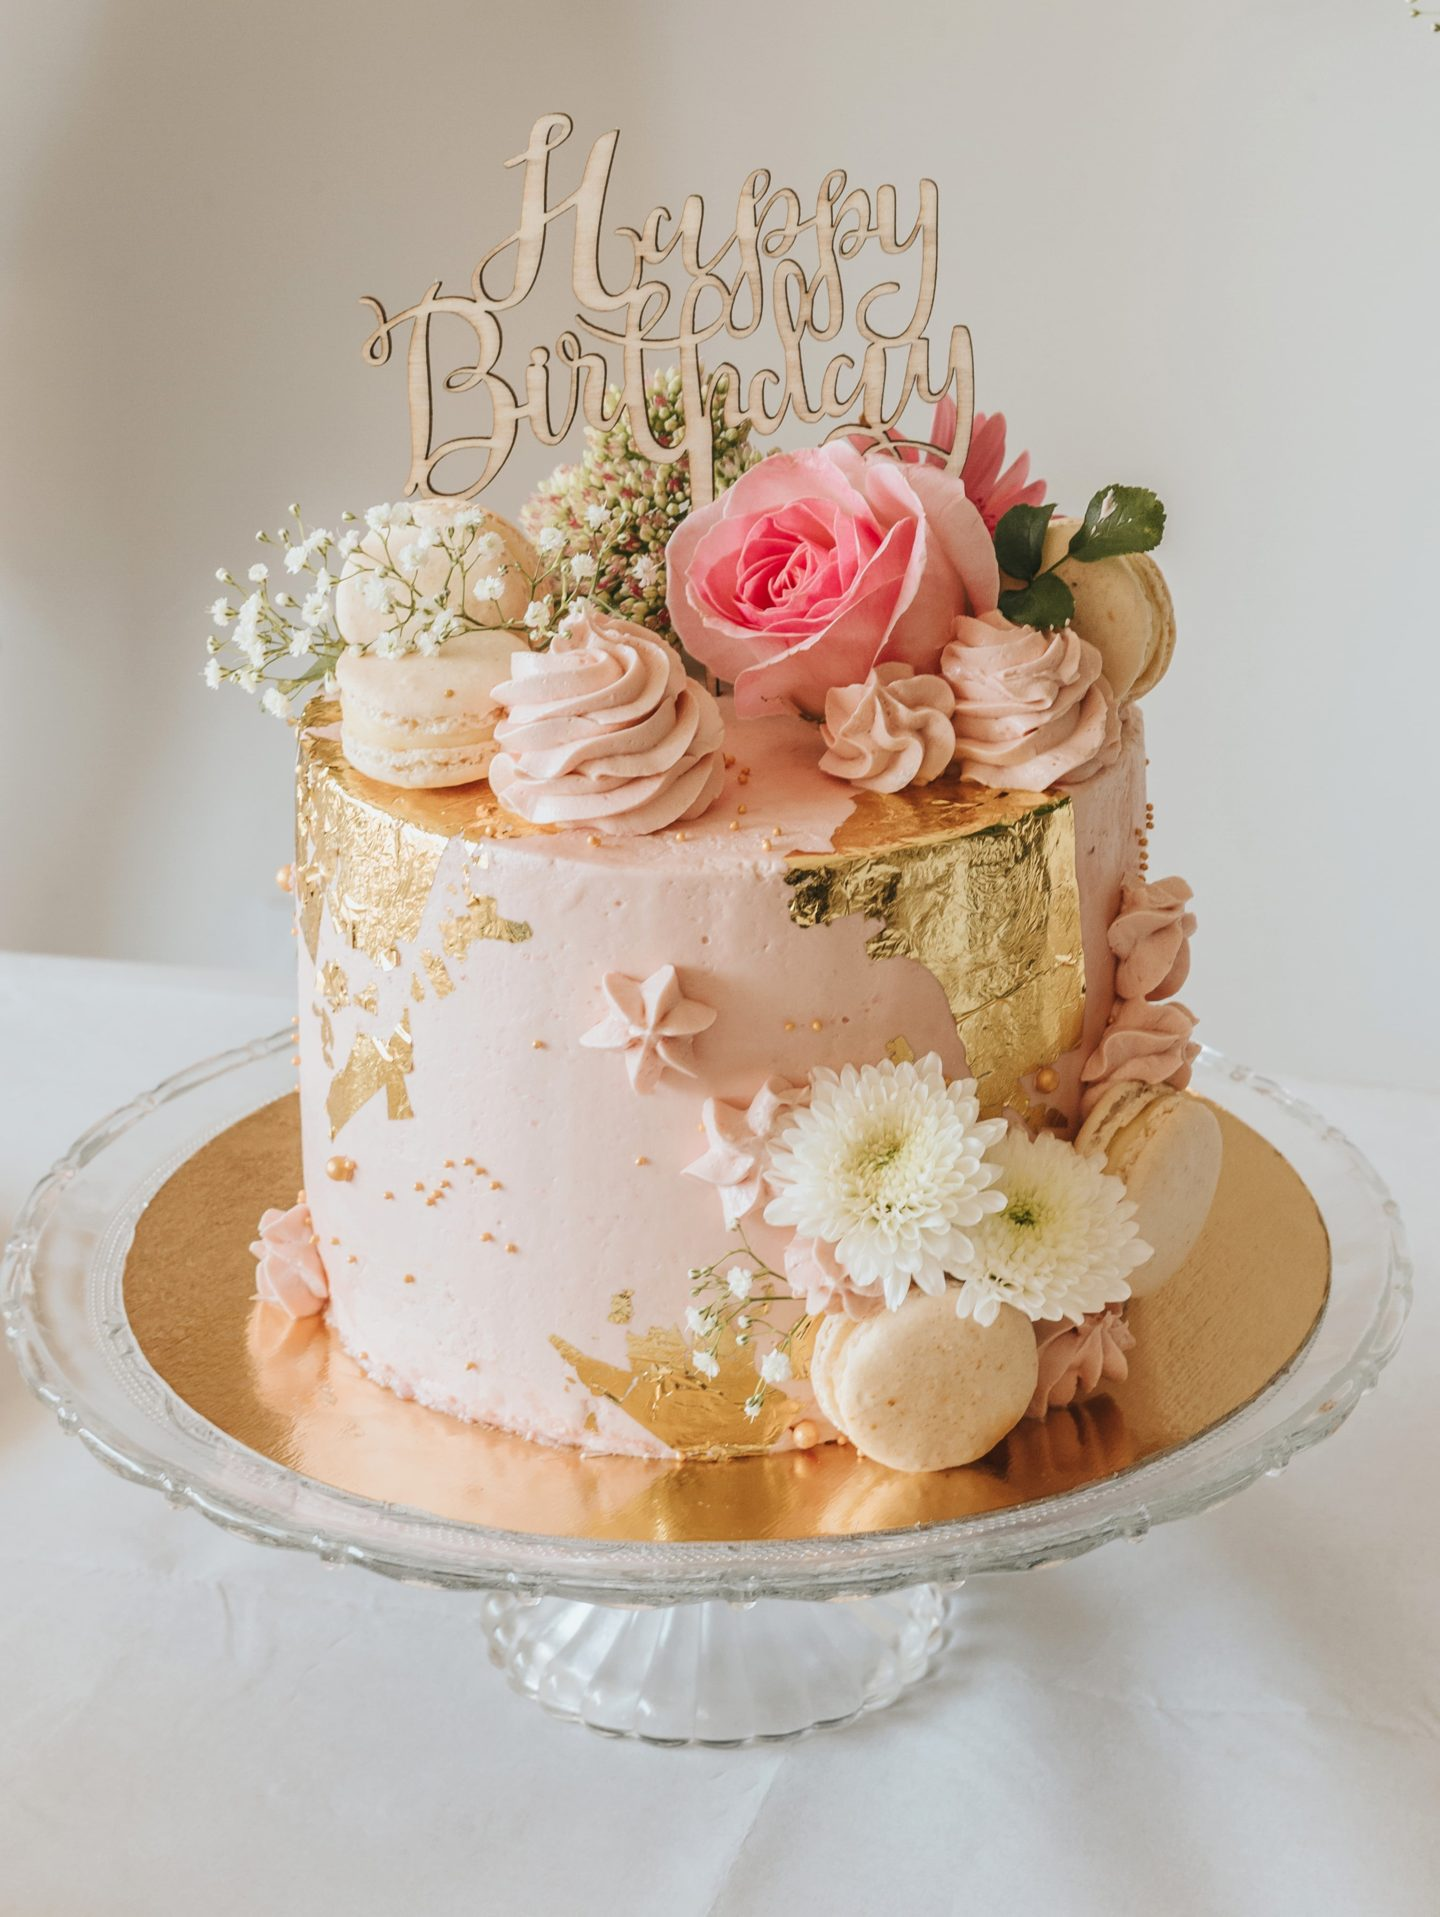 Birthday cake, decor, flower, rose.